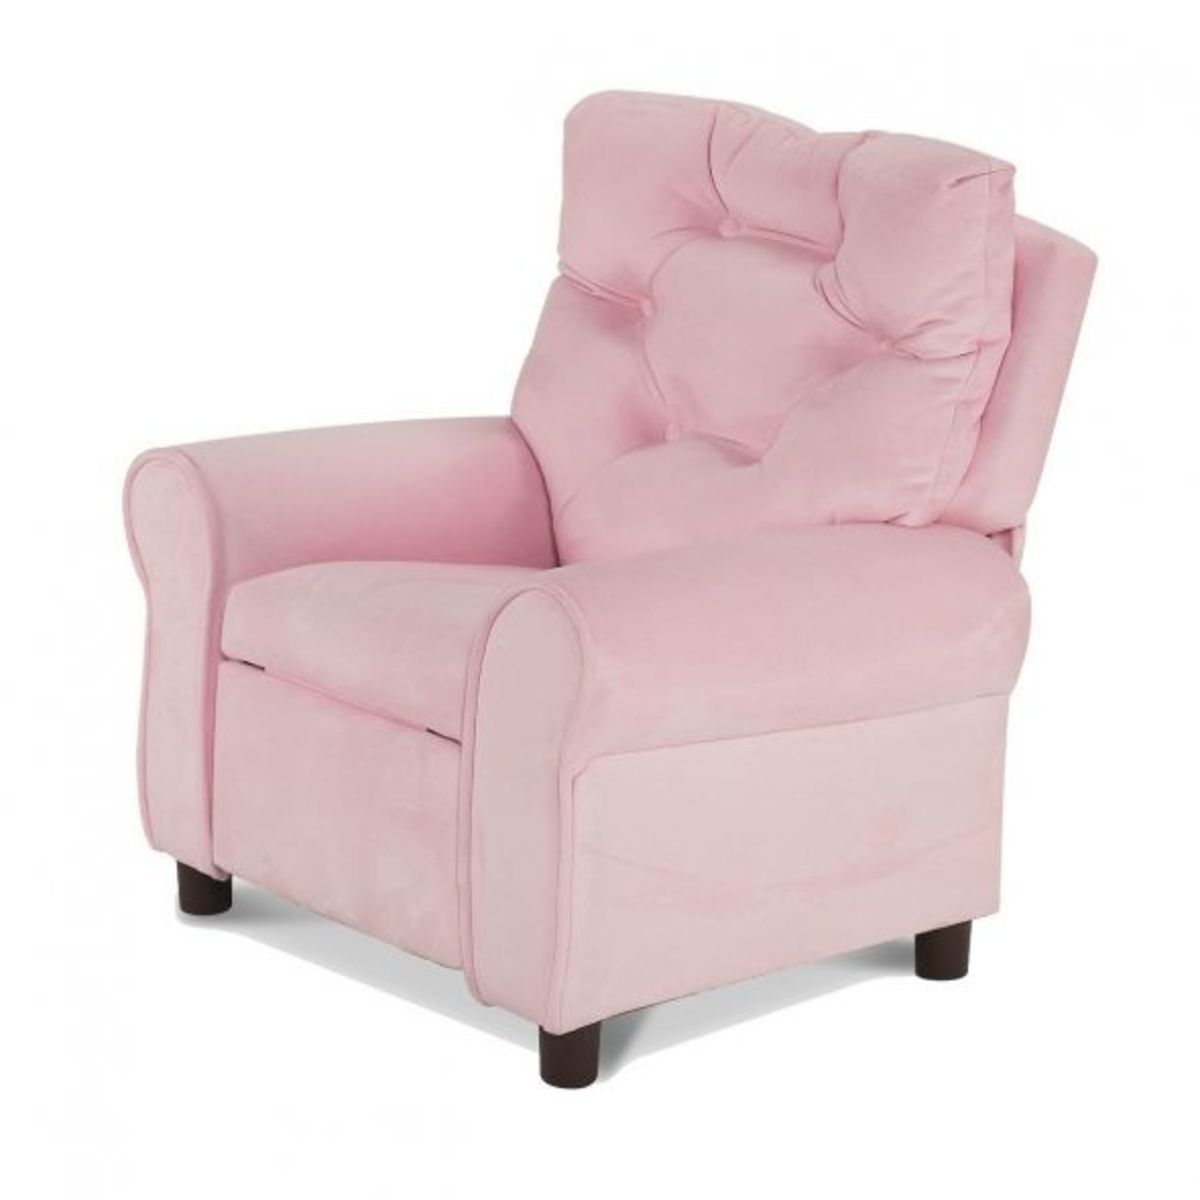 Pink Kids recliner for girls